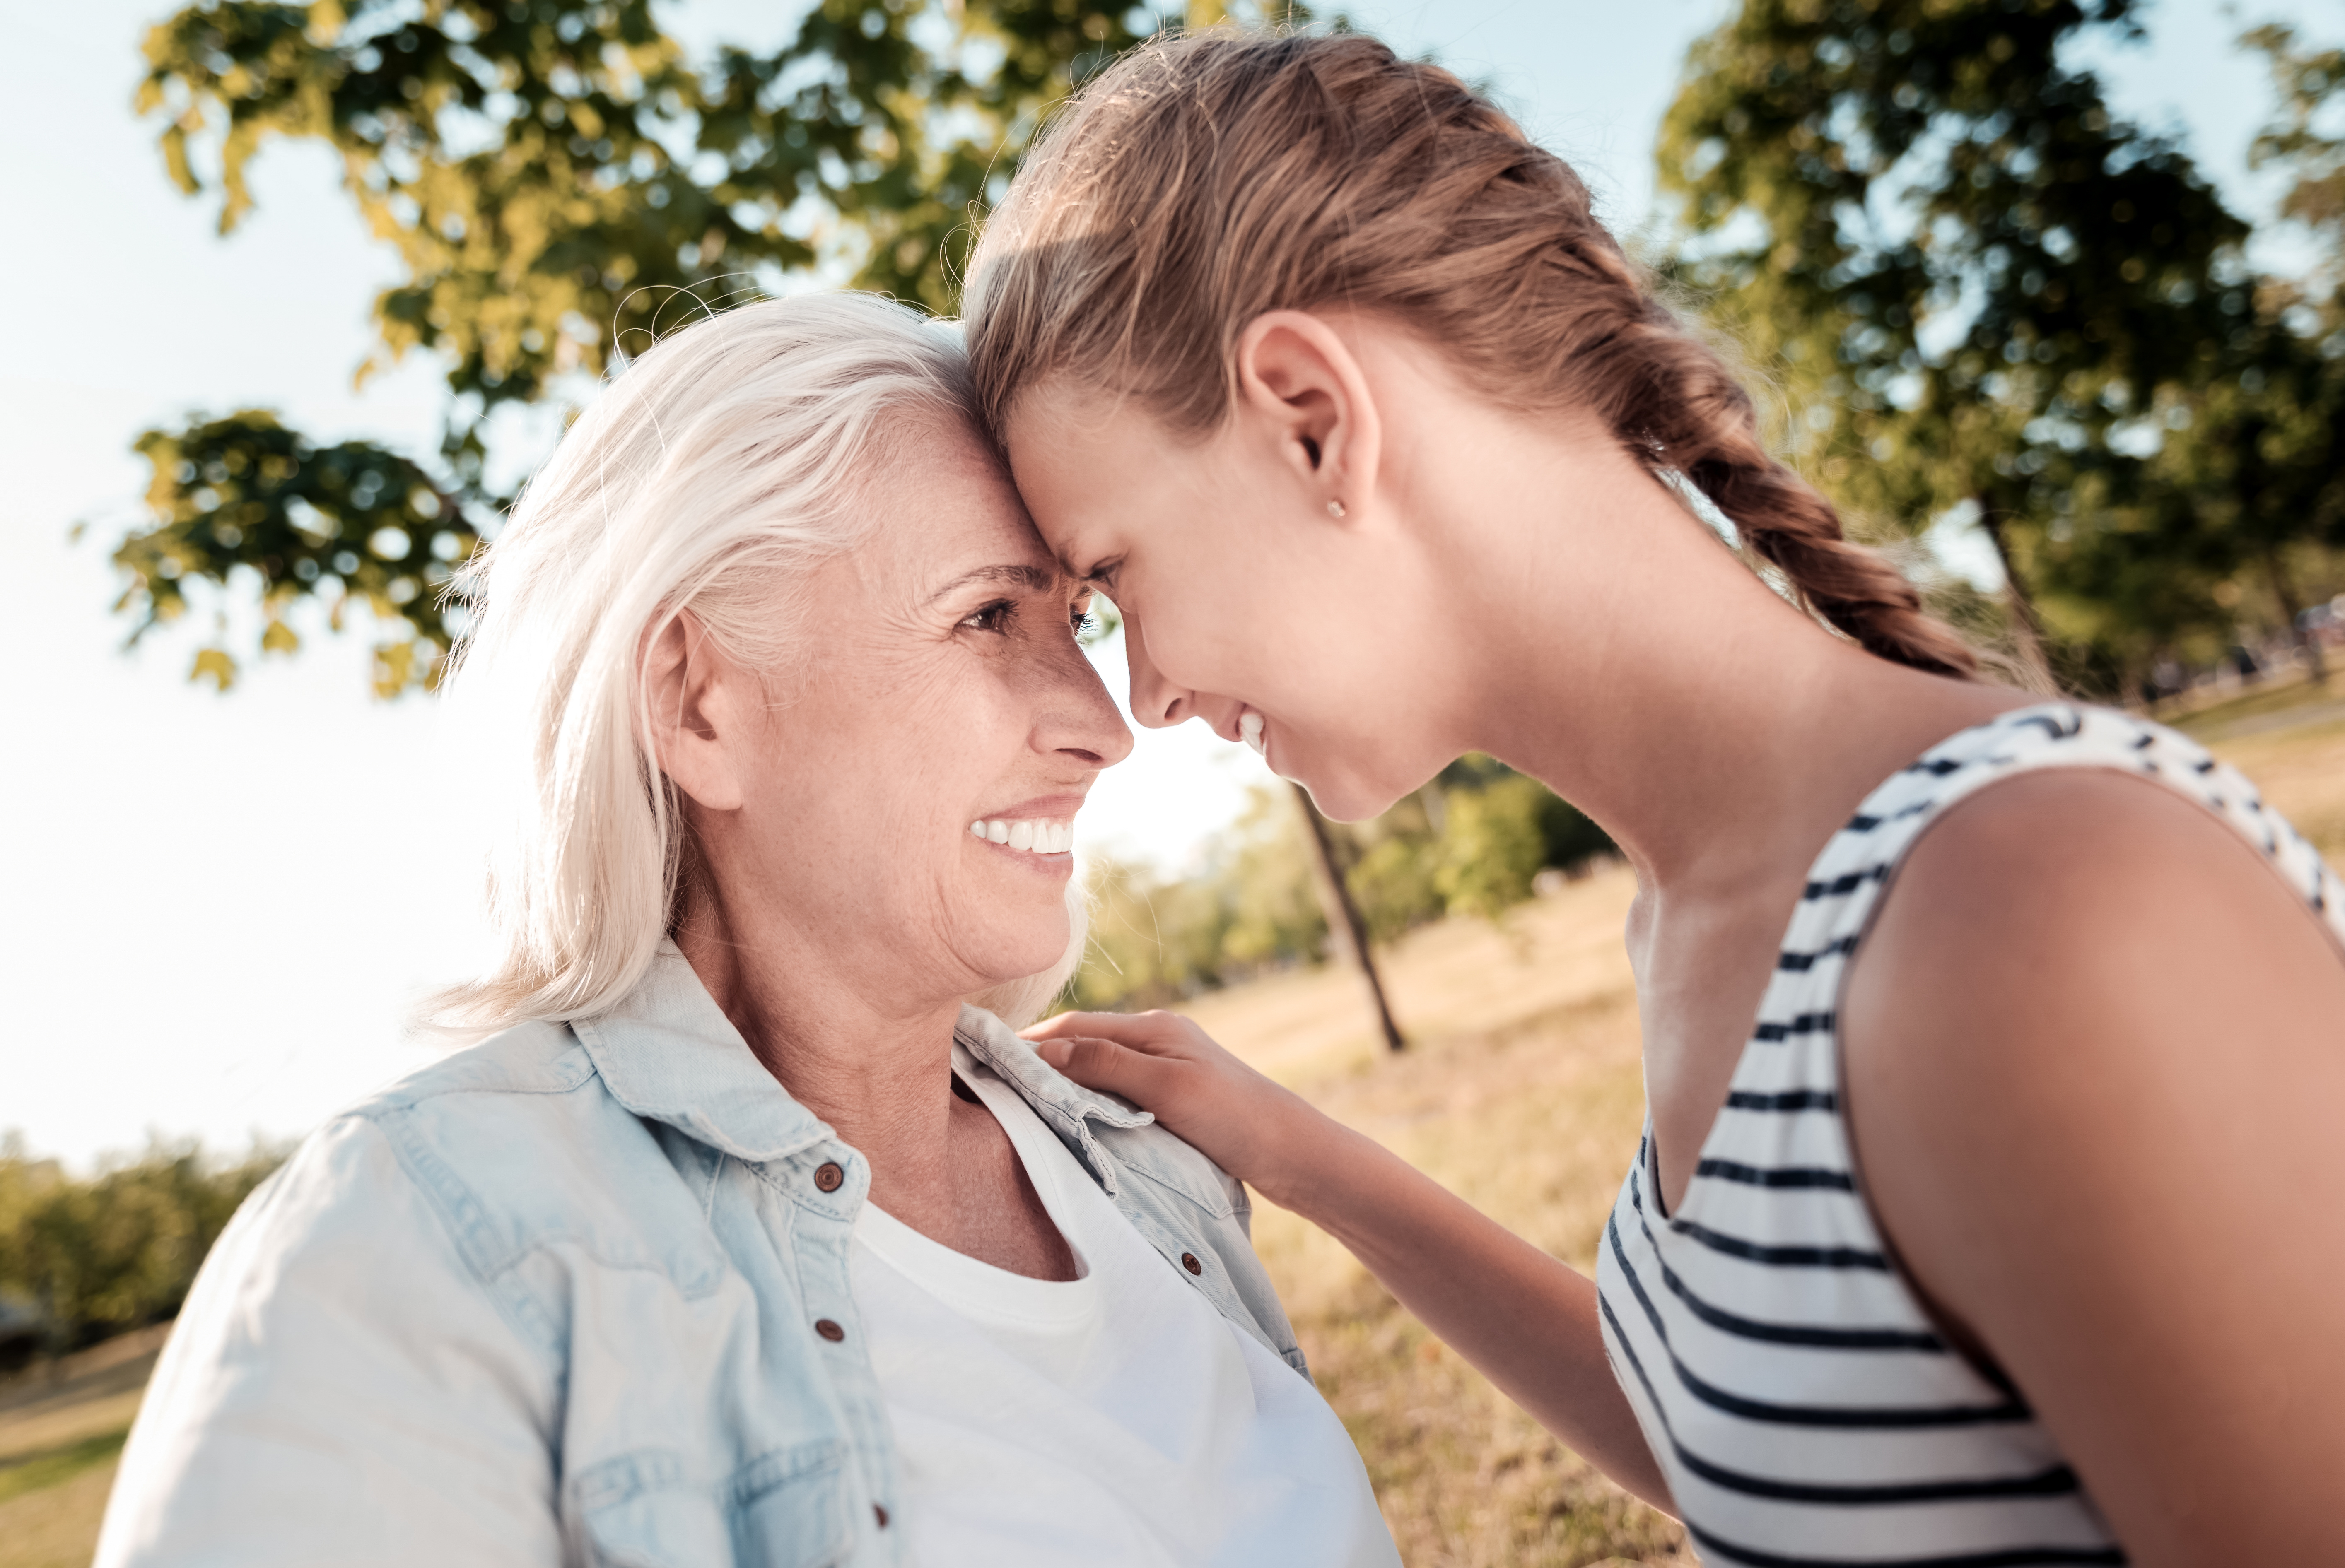 Activities to Share with Your Senior Parent